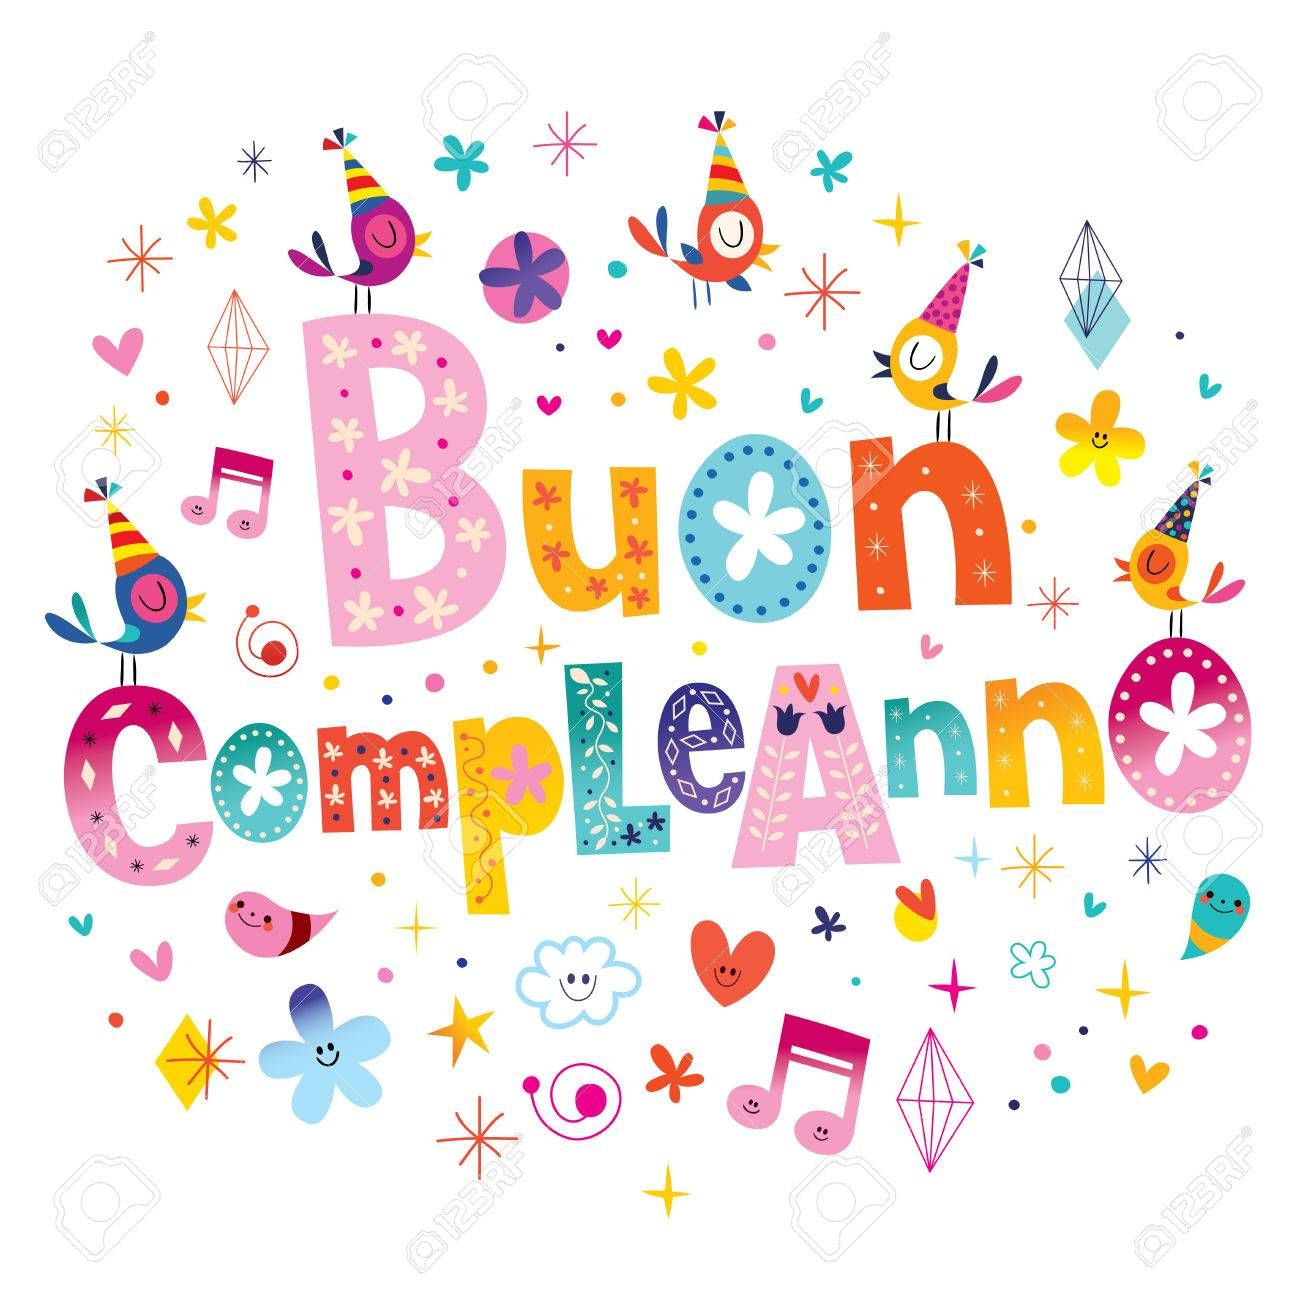 How To Say Happy Birthday In Italian Exclaim Buon Compleanno Direct Your Wishes To The Bec Happy Birthday Italian Happy Birthday Cards Happy Birthday Brother